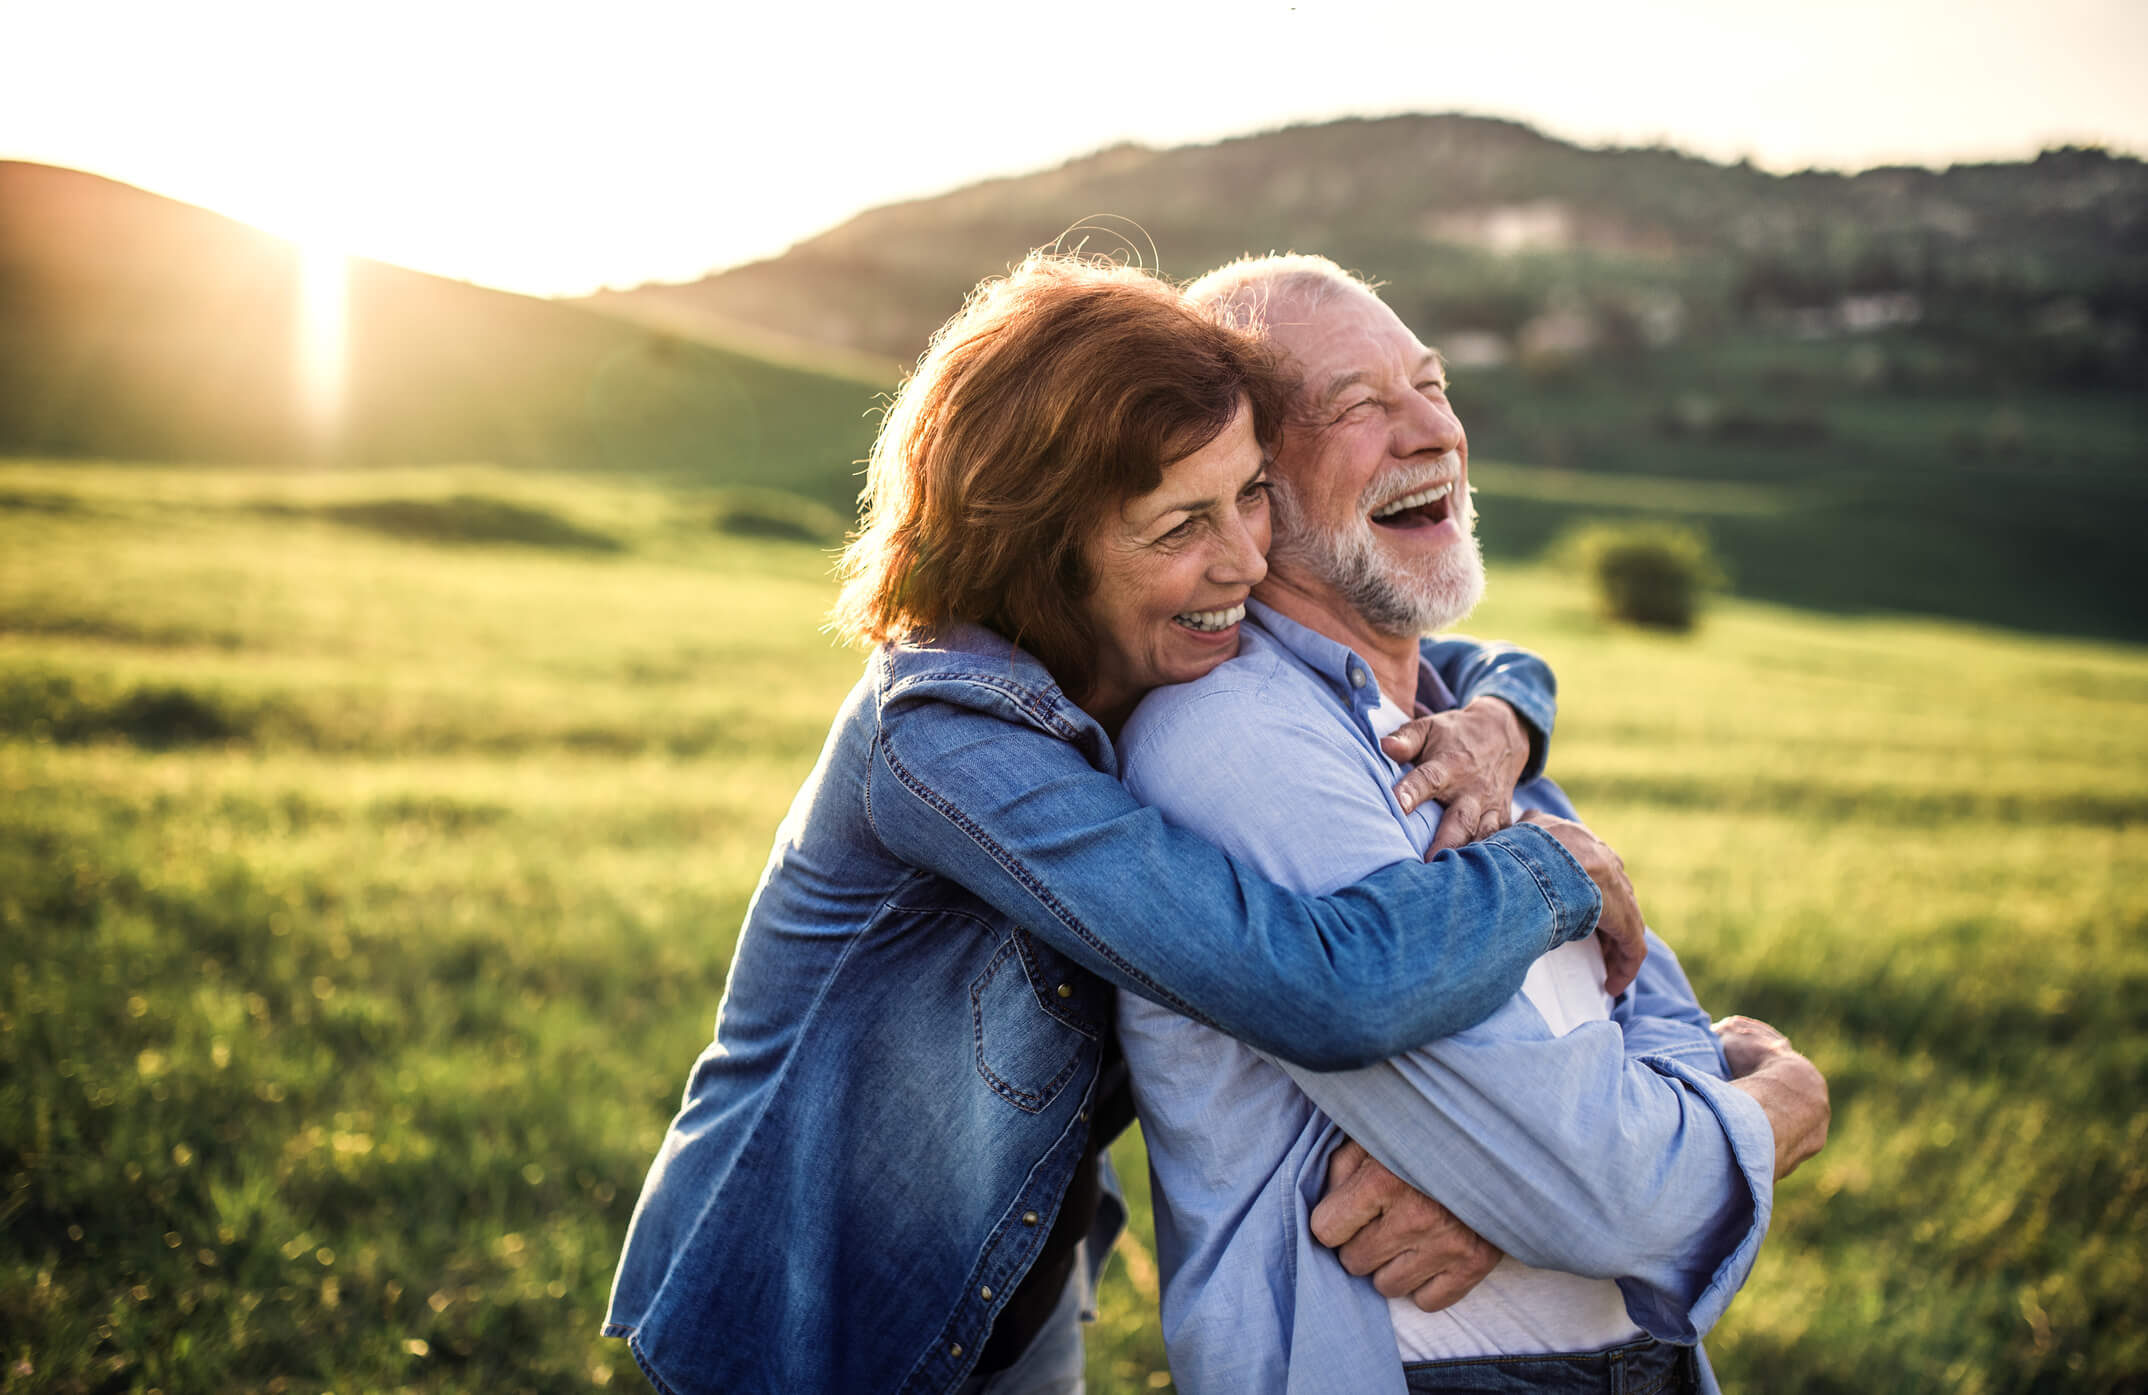 Retiring in Gambrills- What You Need to Know